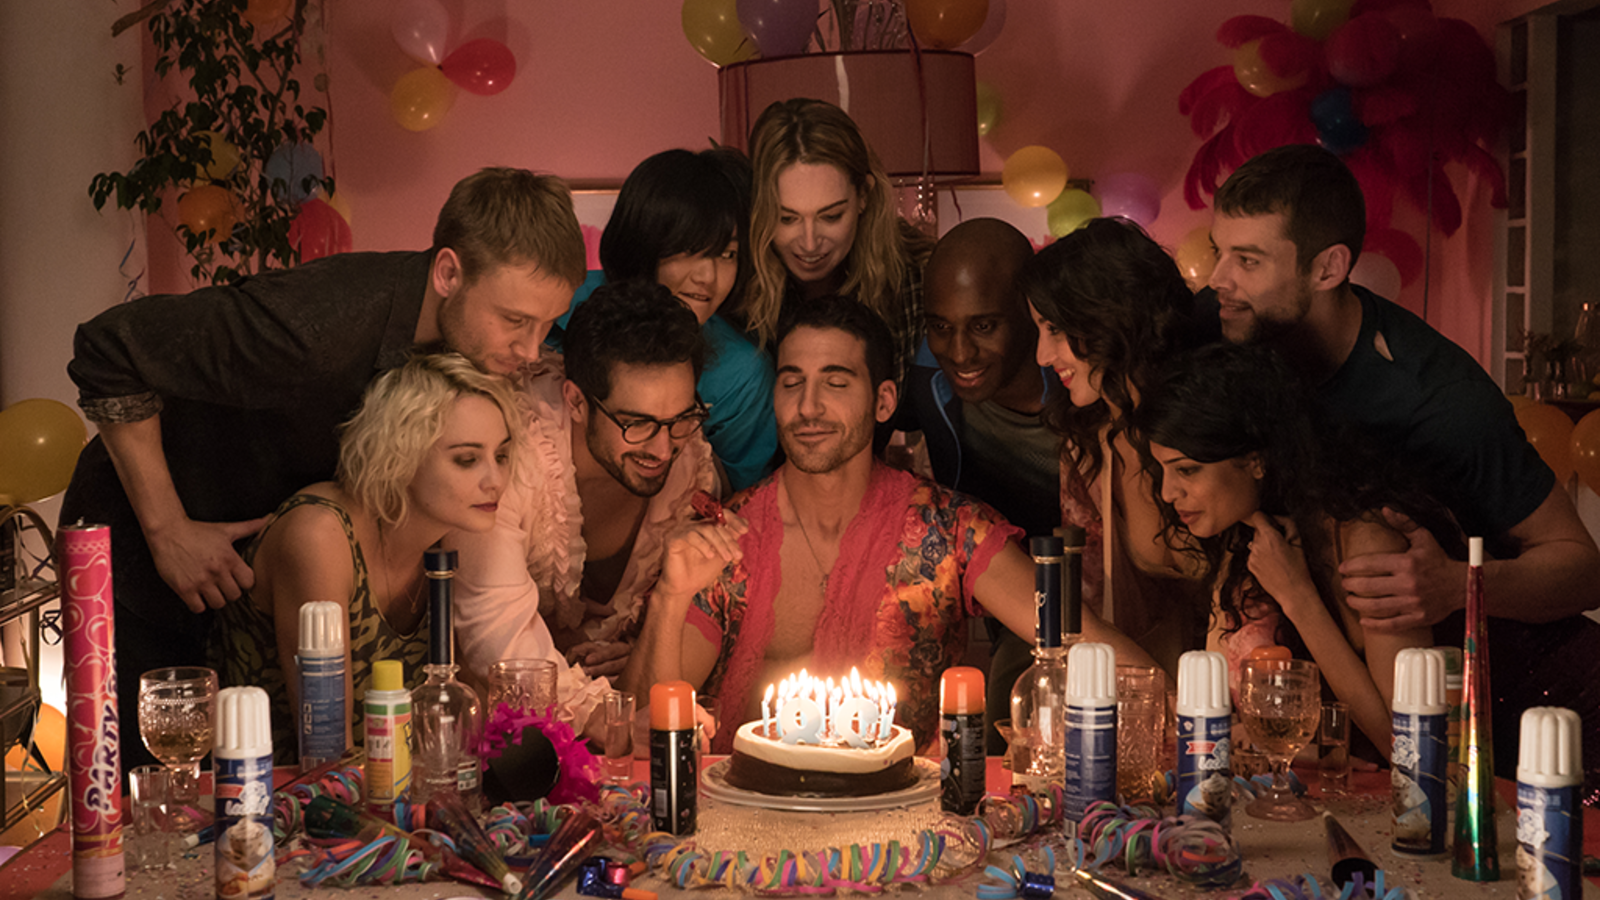 The Sense8 cast in happier times: not sensating their imminent cancellation. (Netflix)